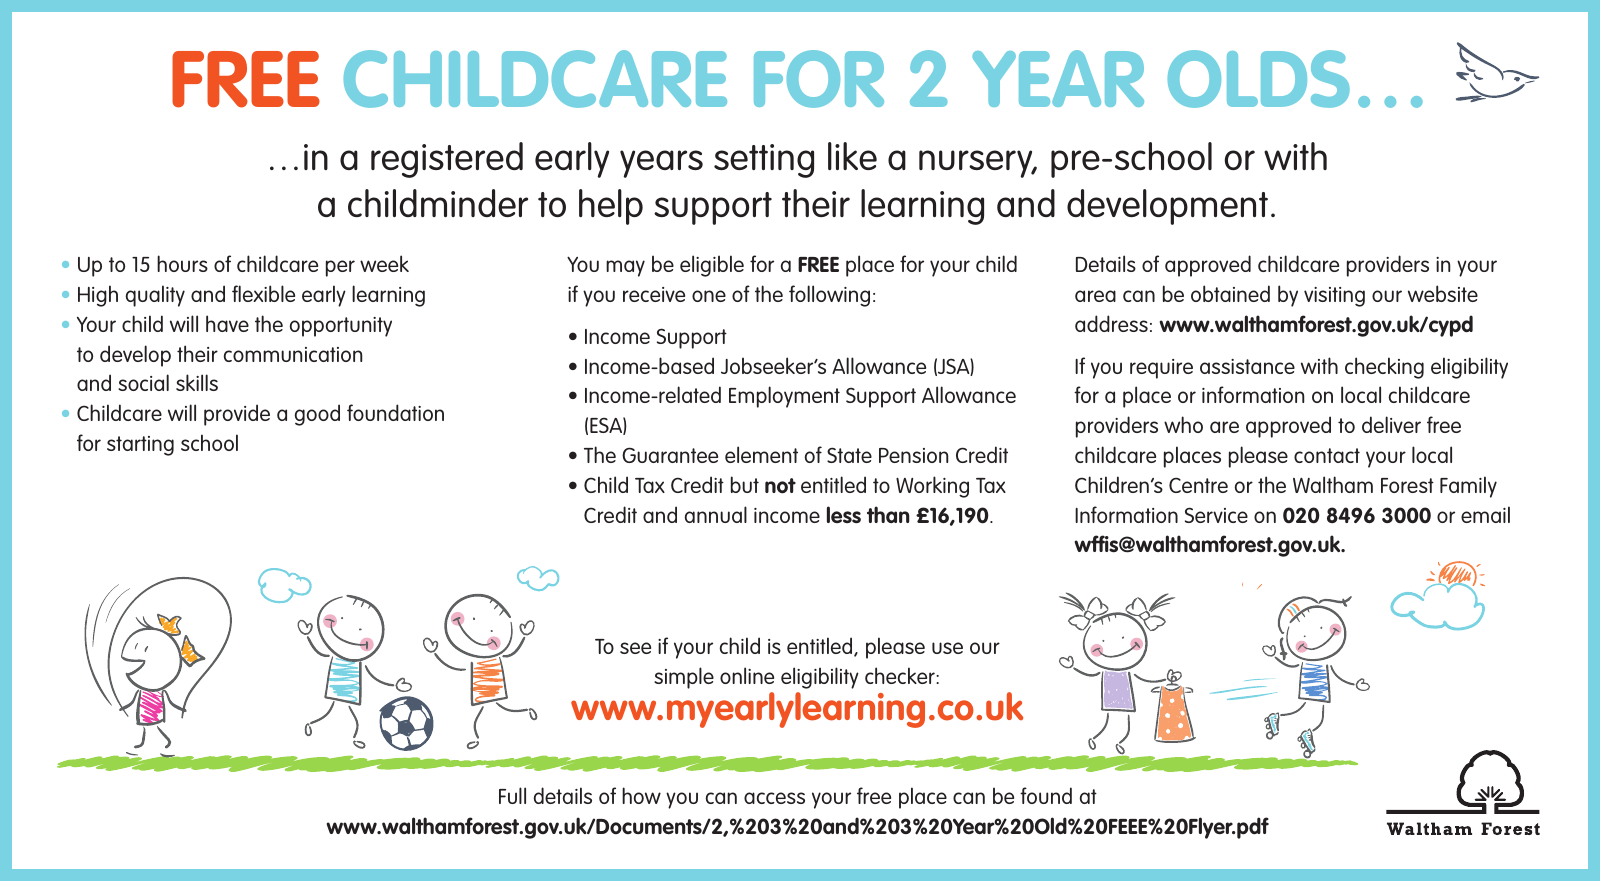 Free Childcare Places For 2 Year Olds